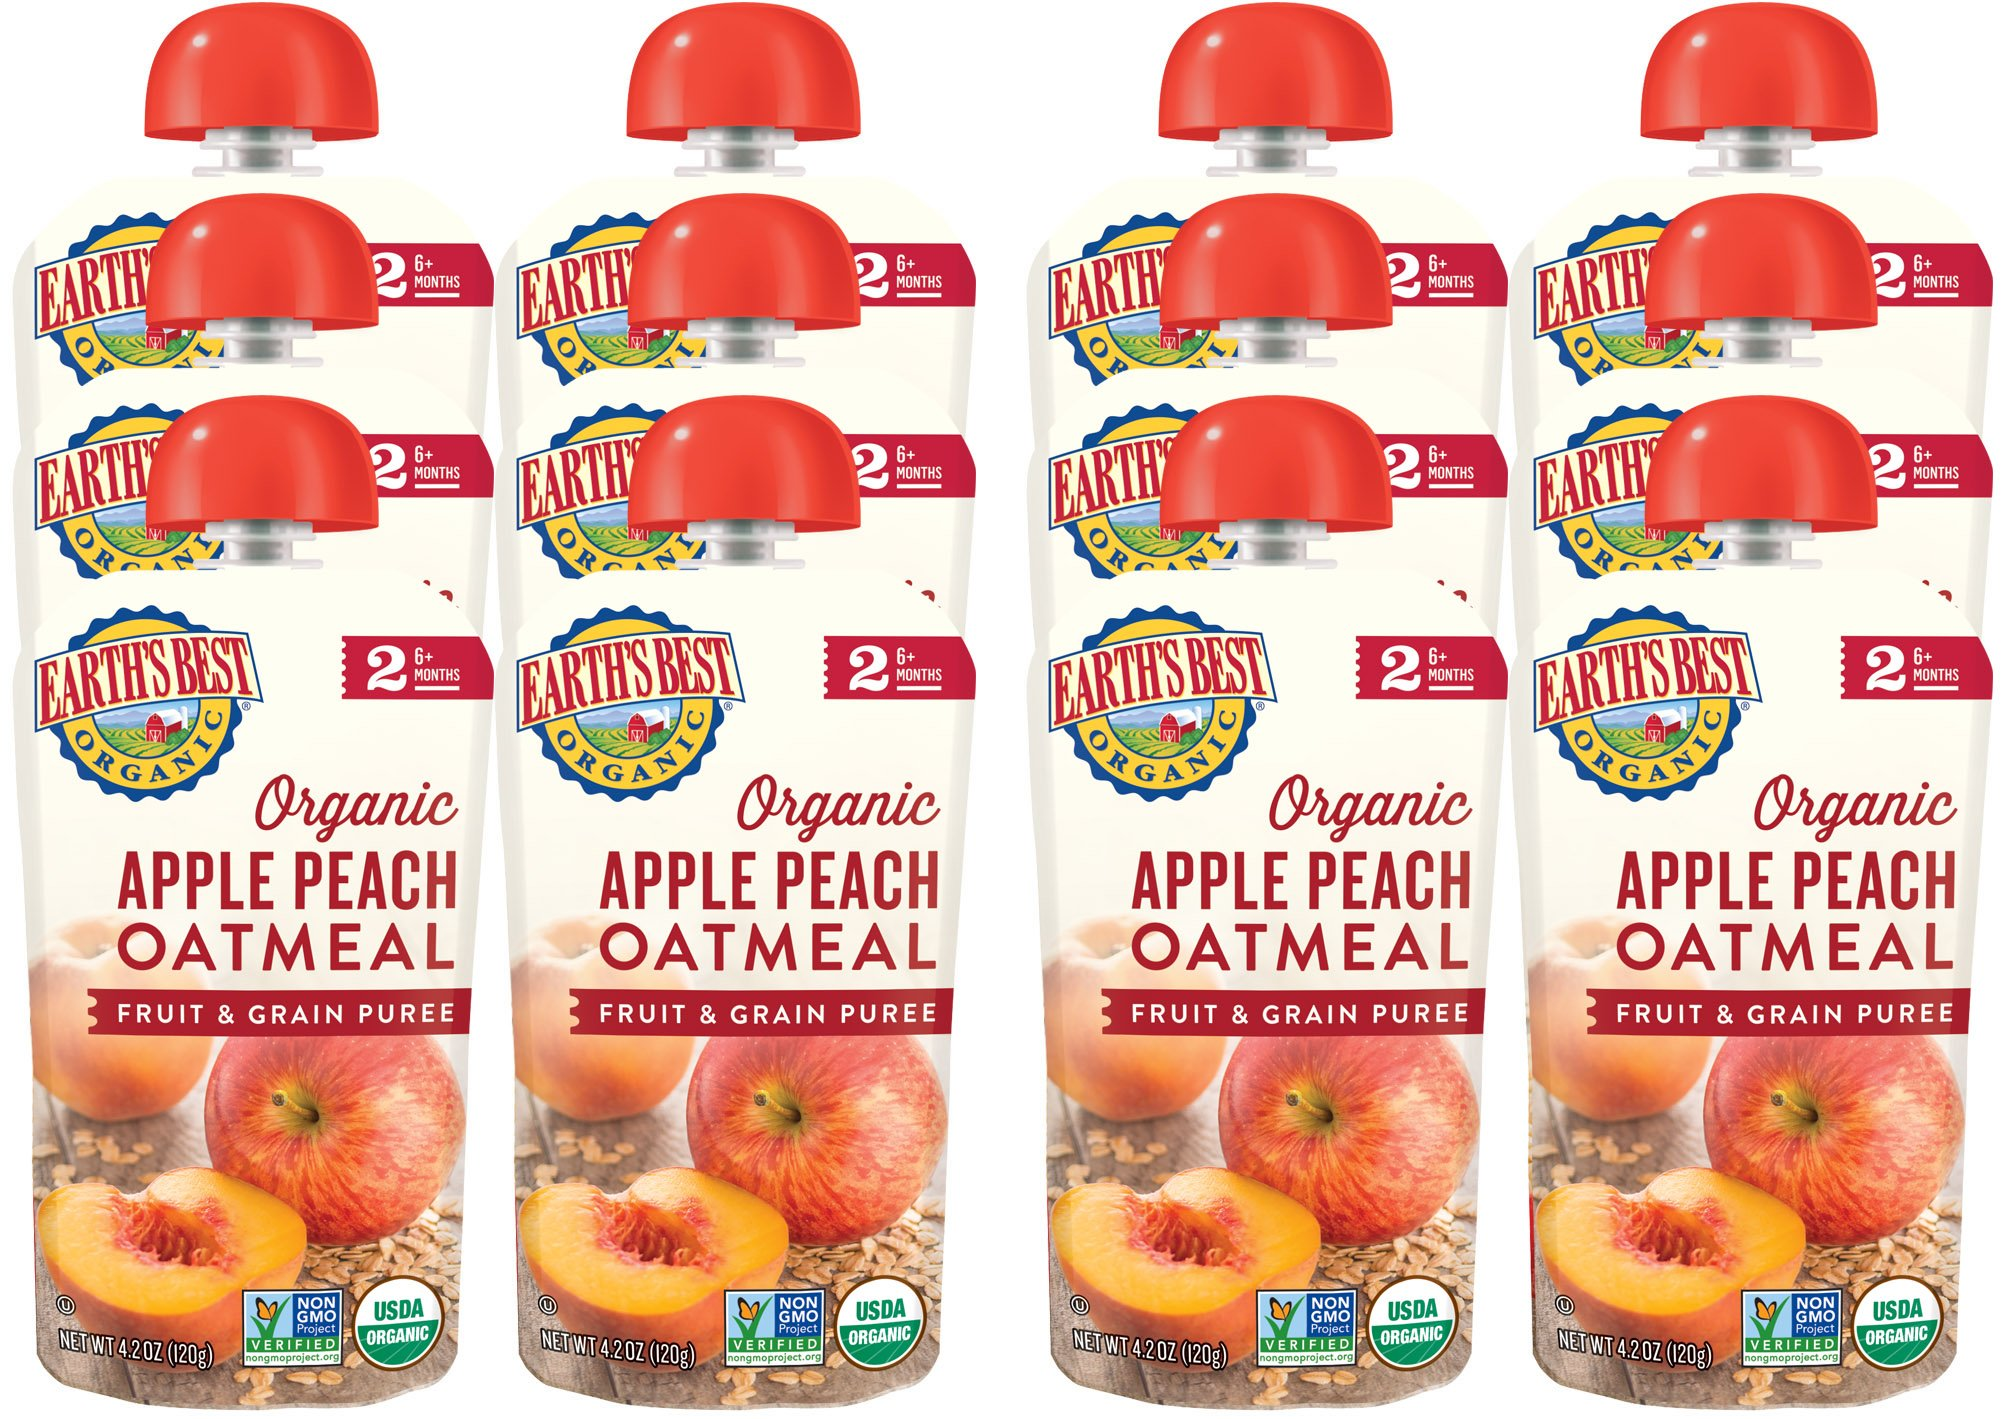 Earth's Best Organic Stage 2 Baby Food, Apple Peach and Oatmeal, 4.2 oz. Pouch (Pack of 12) by Earth's Best (Image #6)